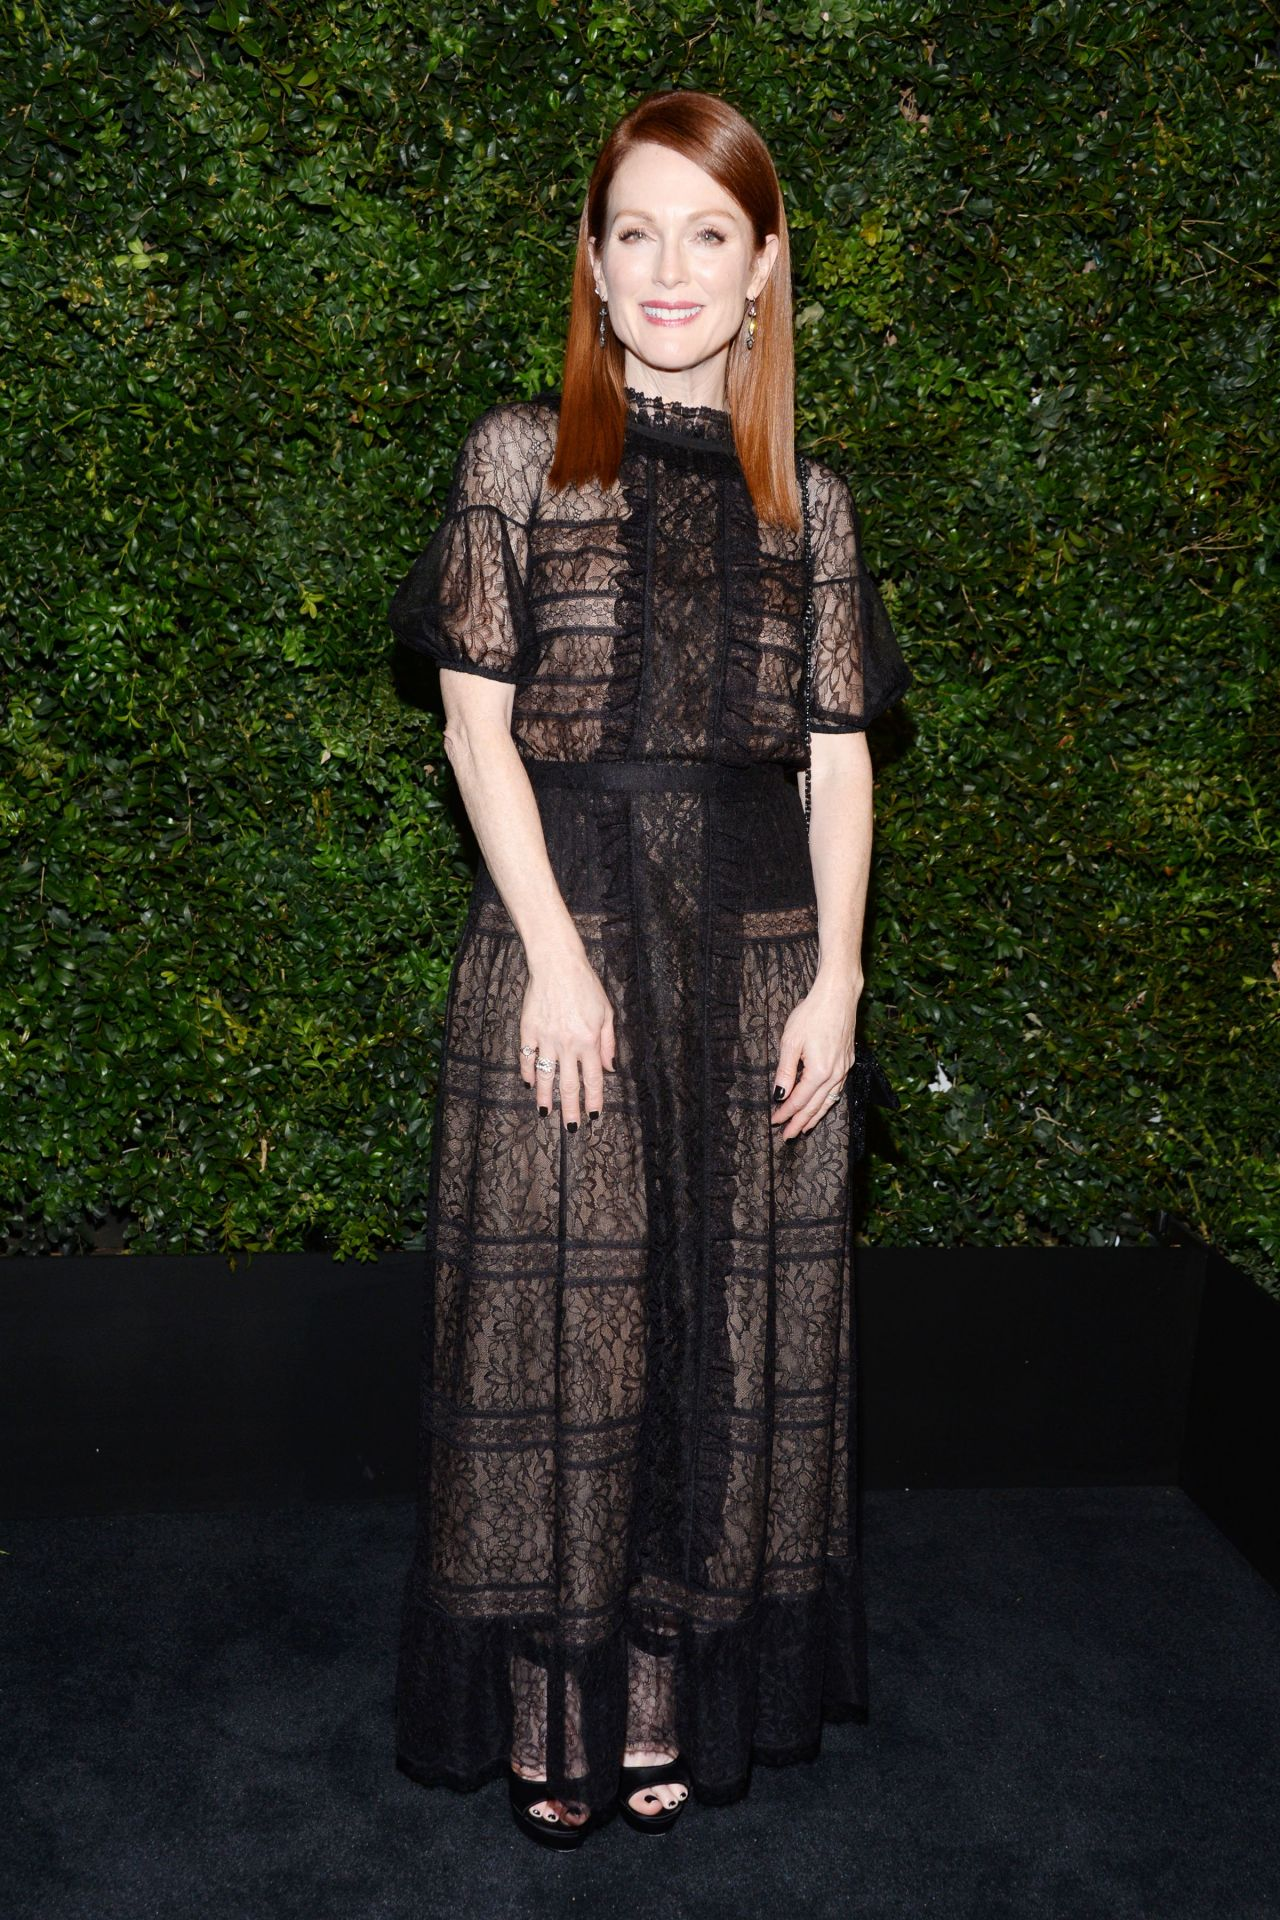 julianne-moore-chanel-and-charles-finch-oscar-party-in-los-angeles-ca-2-27-2016-3